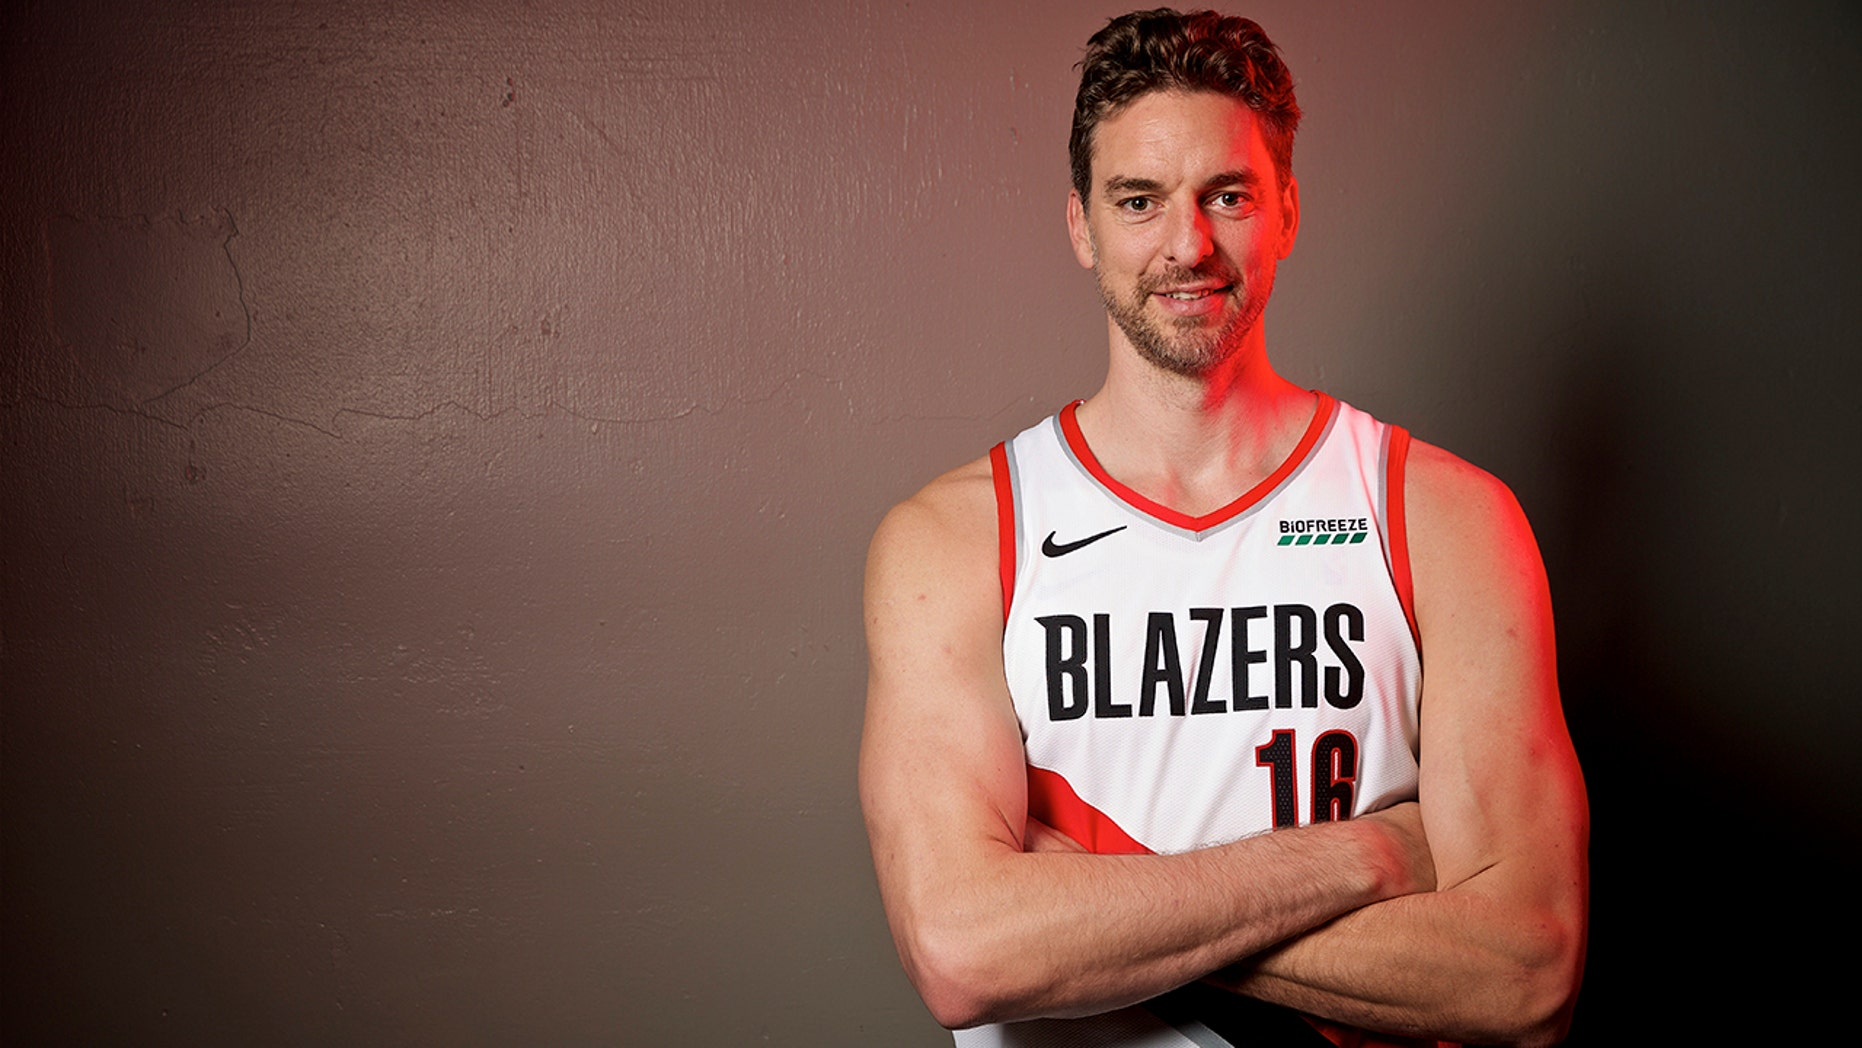 FILE - In this Sept. 30, 2019, file photo, Portland Trail Blazers' Pau Gasol poses during the NBA basketball team's media day in Portland, Ore. The Blazers have waived Gasol, but his career with the team may not be over. Gasol, who never played in a game with the Blazers, announced on social media Tuesday, Nov. 20, that the team had released him. Gasol said he plans to remain in Portland to continue his rehabilitation after surgery for a stress fracture, and he is discussing a new role with the Trail Blazers. (AP Photo/Sam Ortega, File)